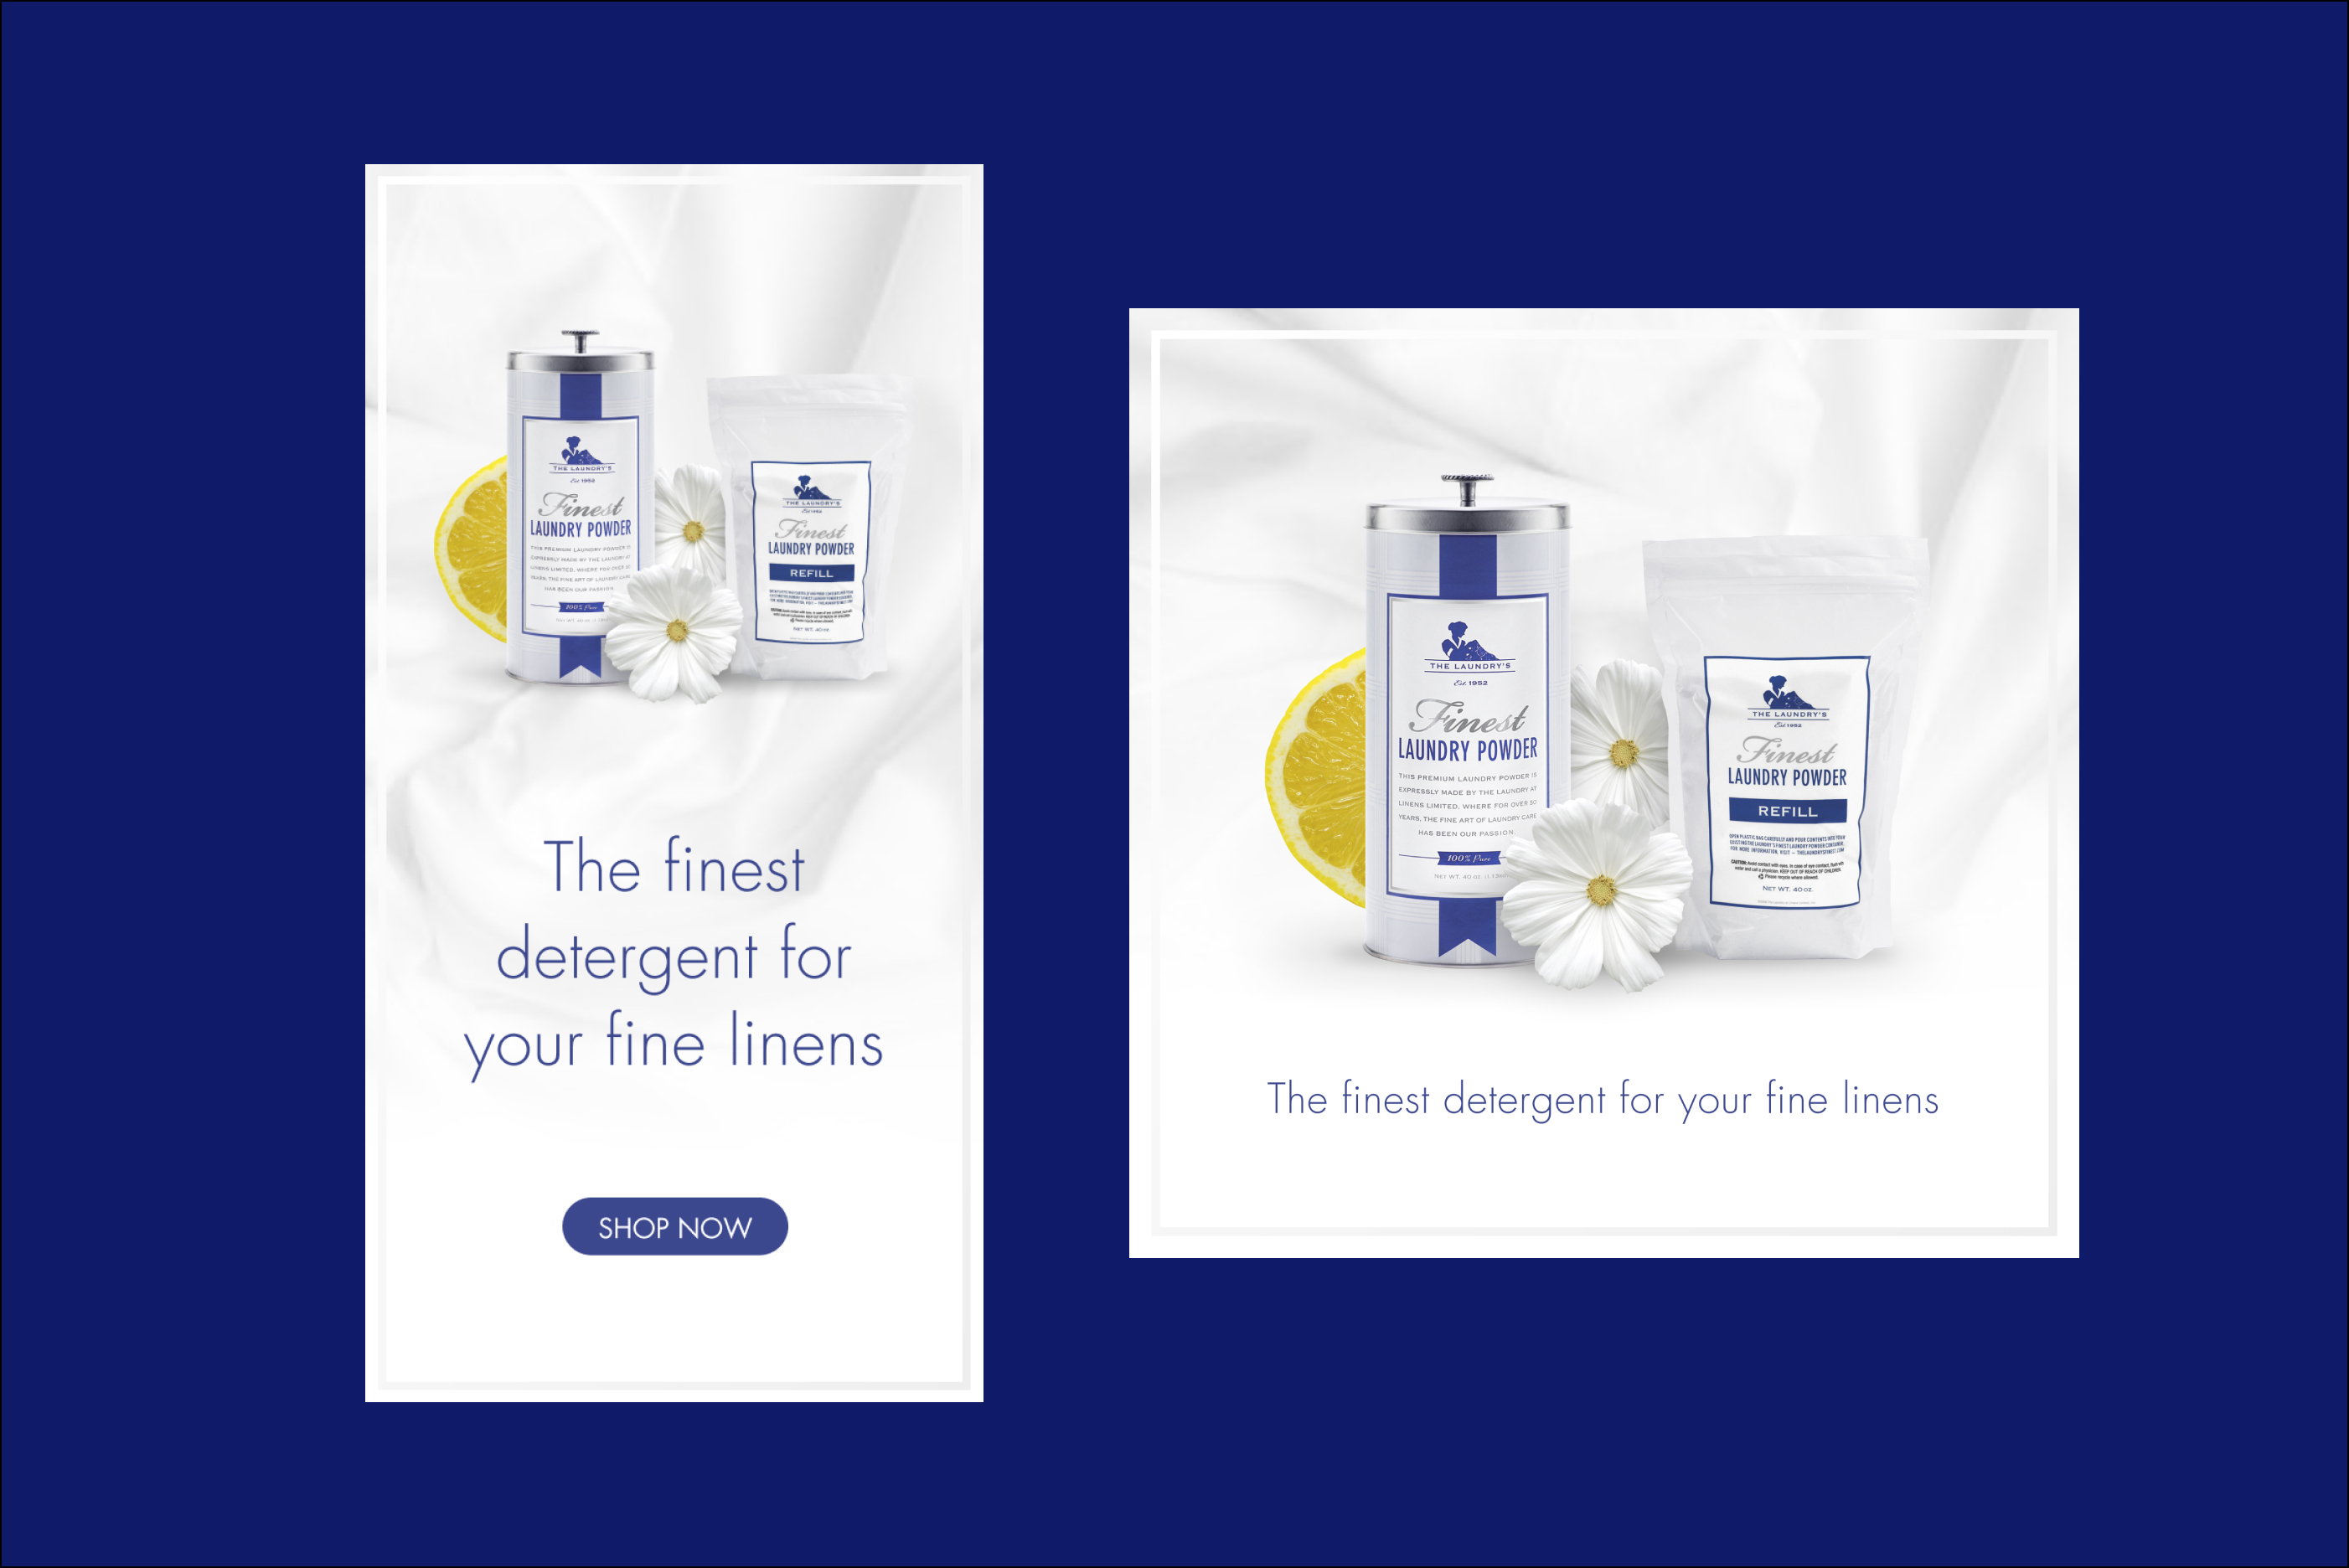 display ads: The finest detergent for your linens